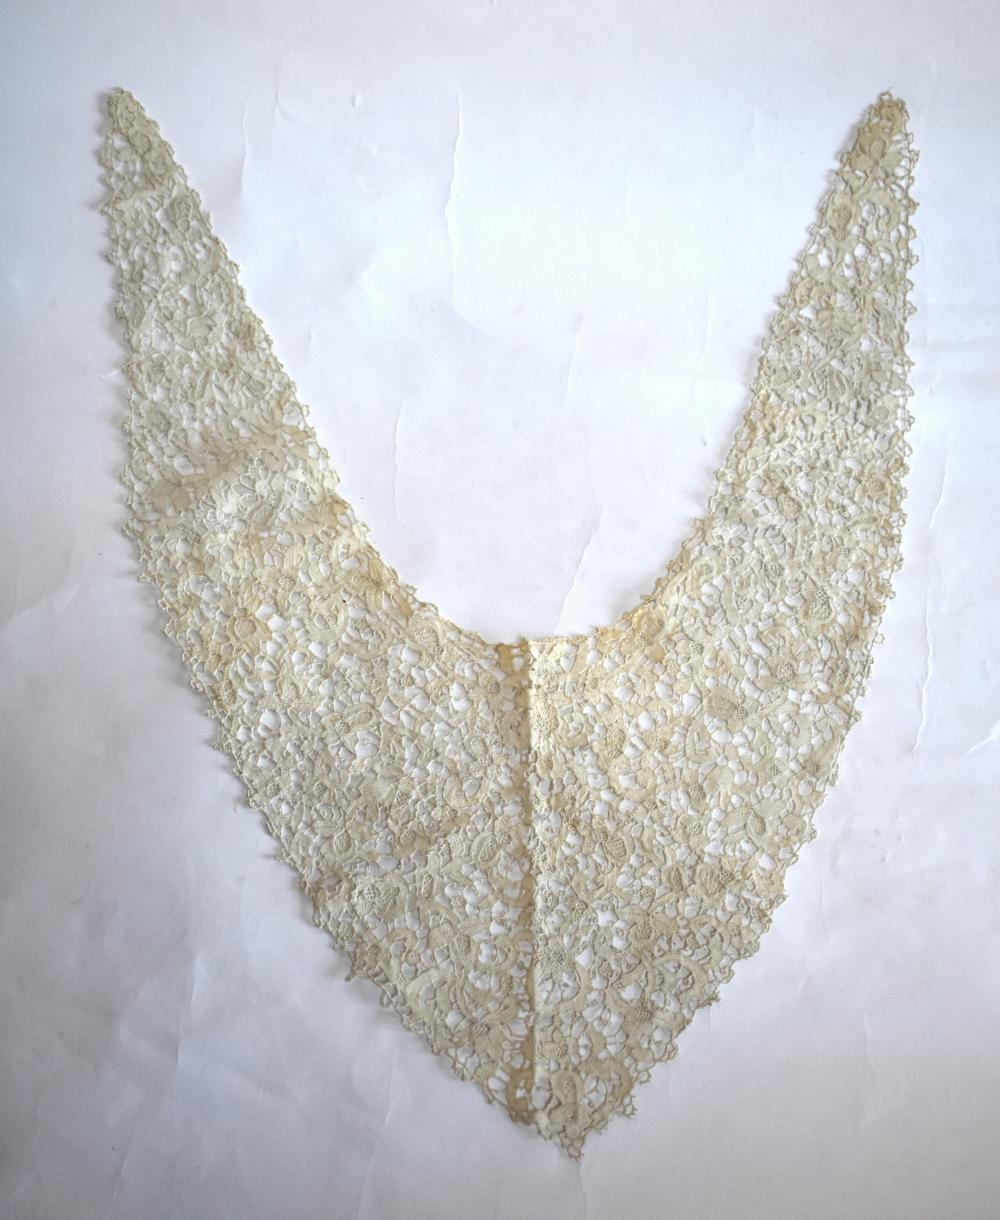 19th century and later lace, lace collars, lappets